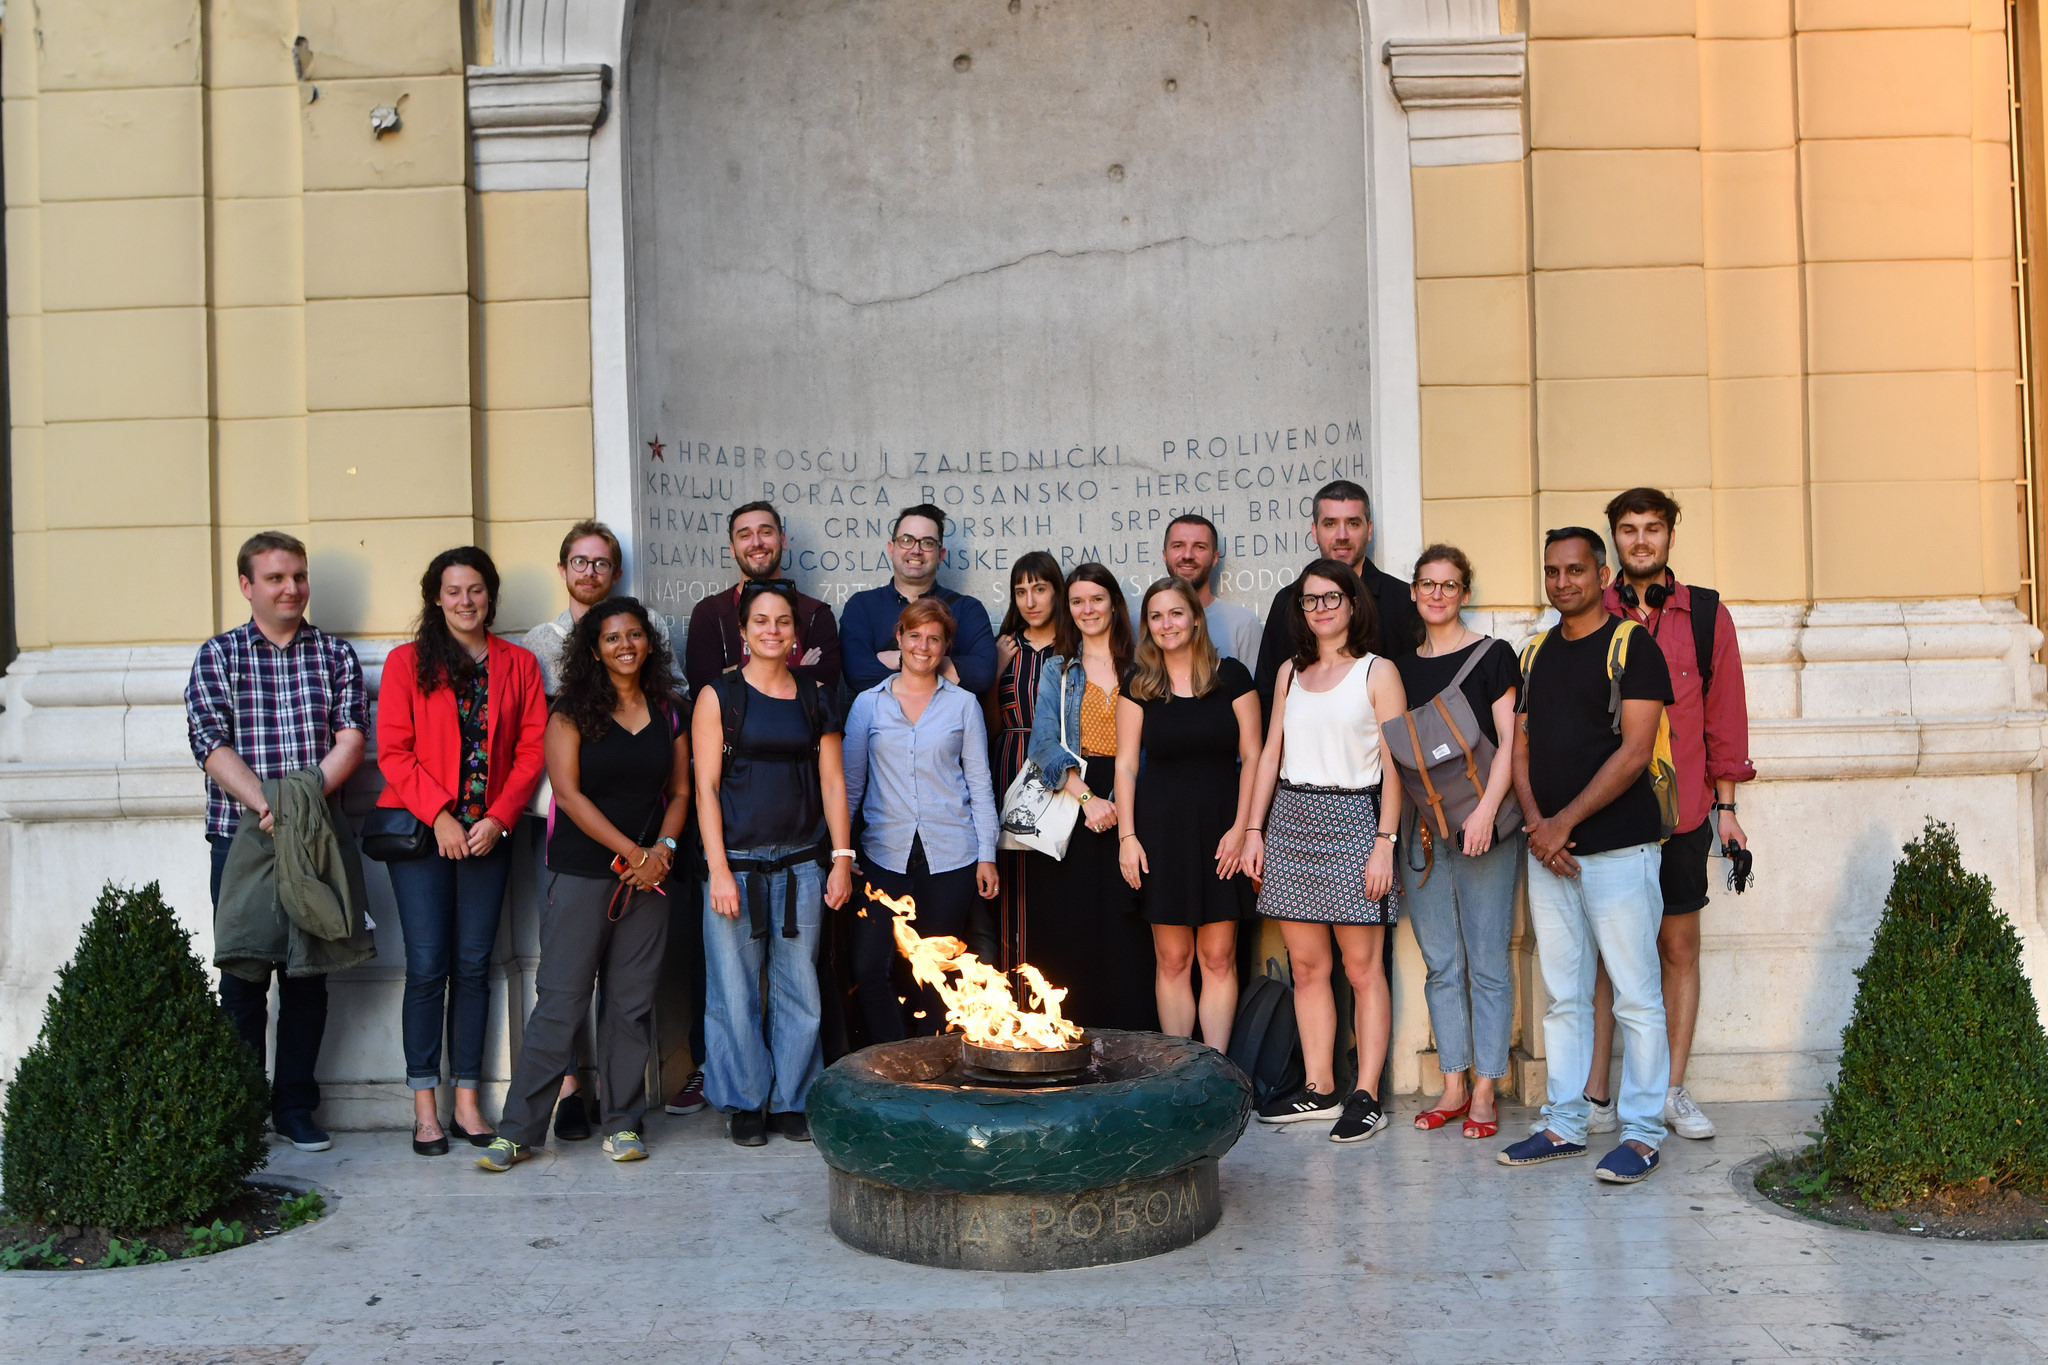 Bosnian election study tour group in front of the Eternal flame memorial in Sarajevo. Credit: Kemal Softić/iac Berlin